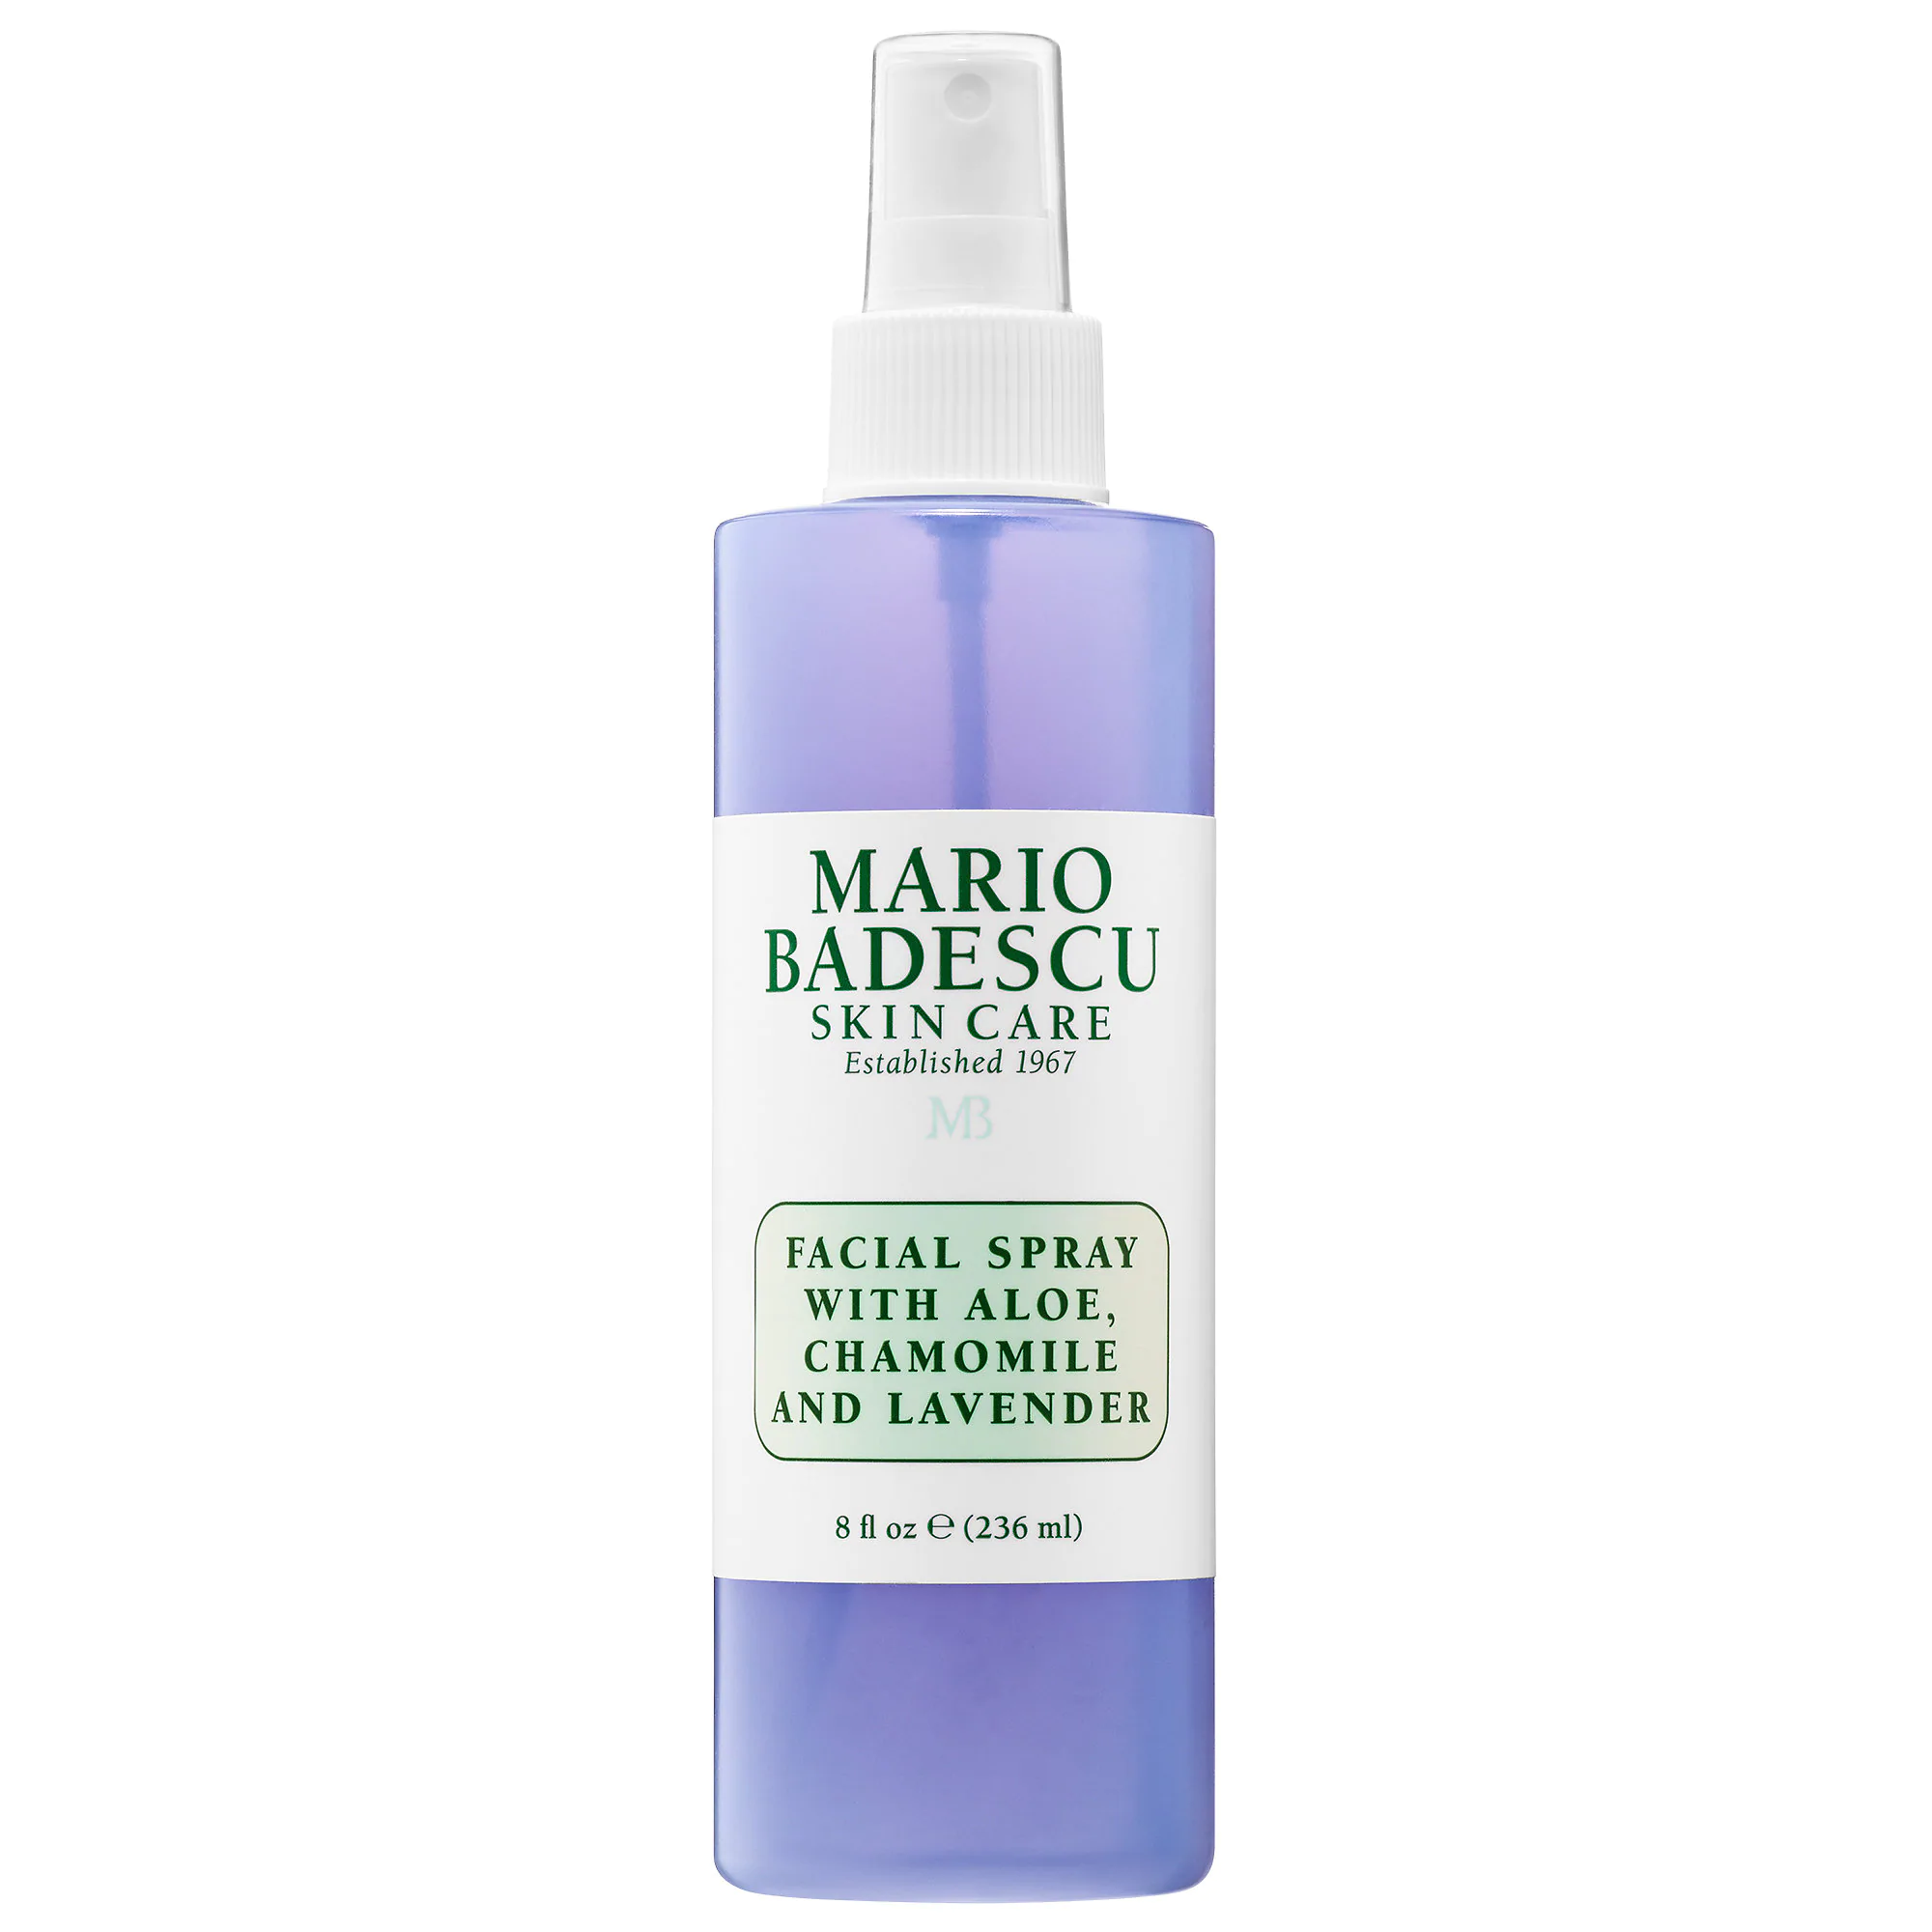 Mario Badescu Facial Spray With Aloe, Chamomile And Lavender